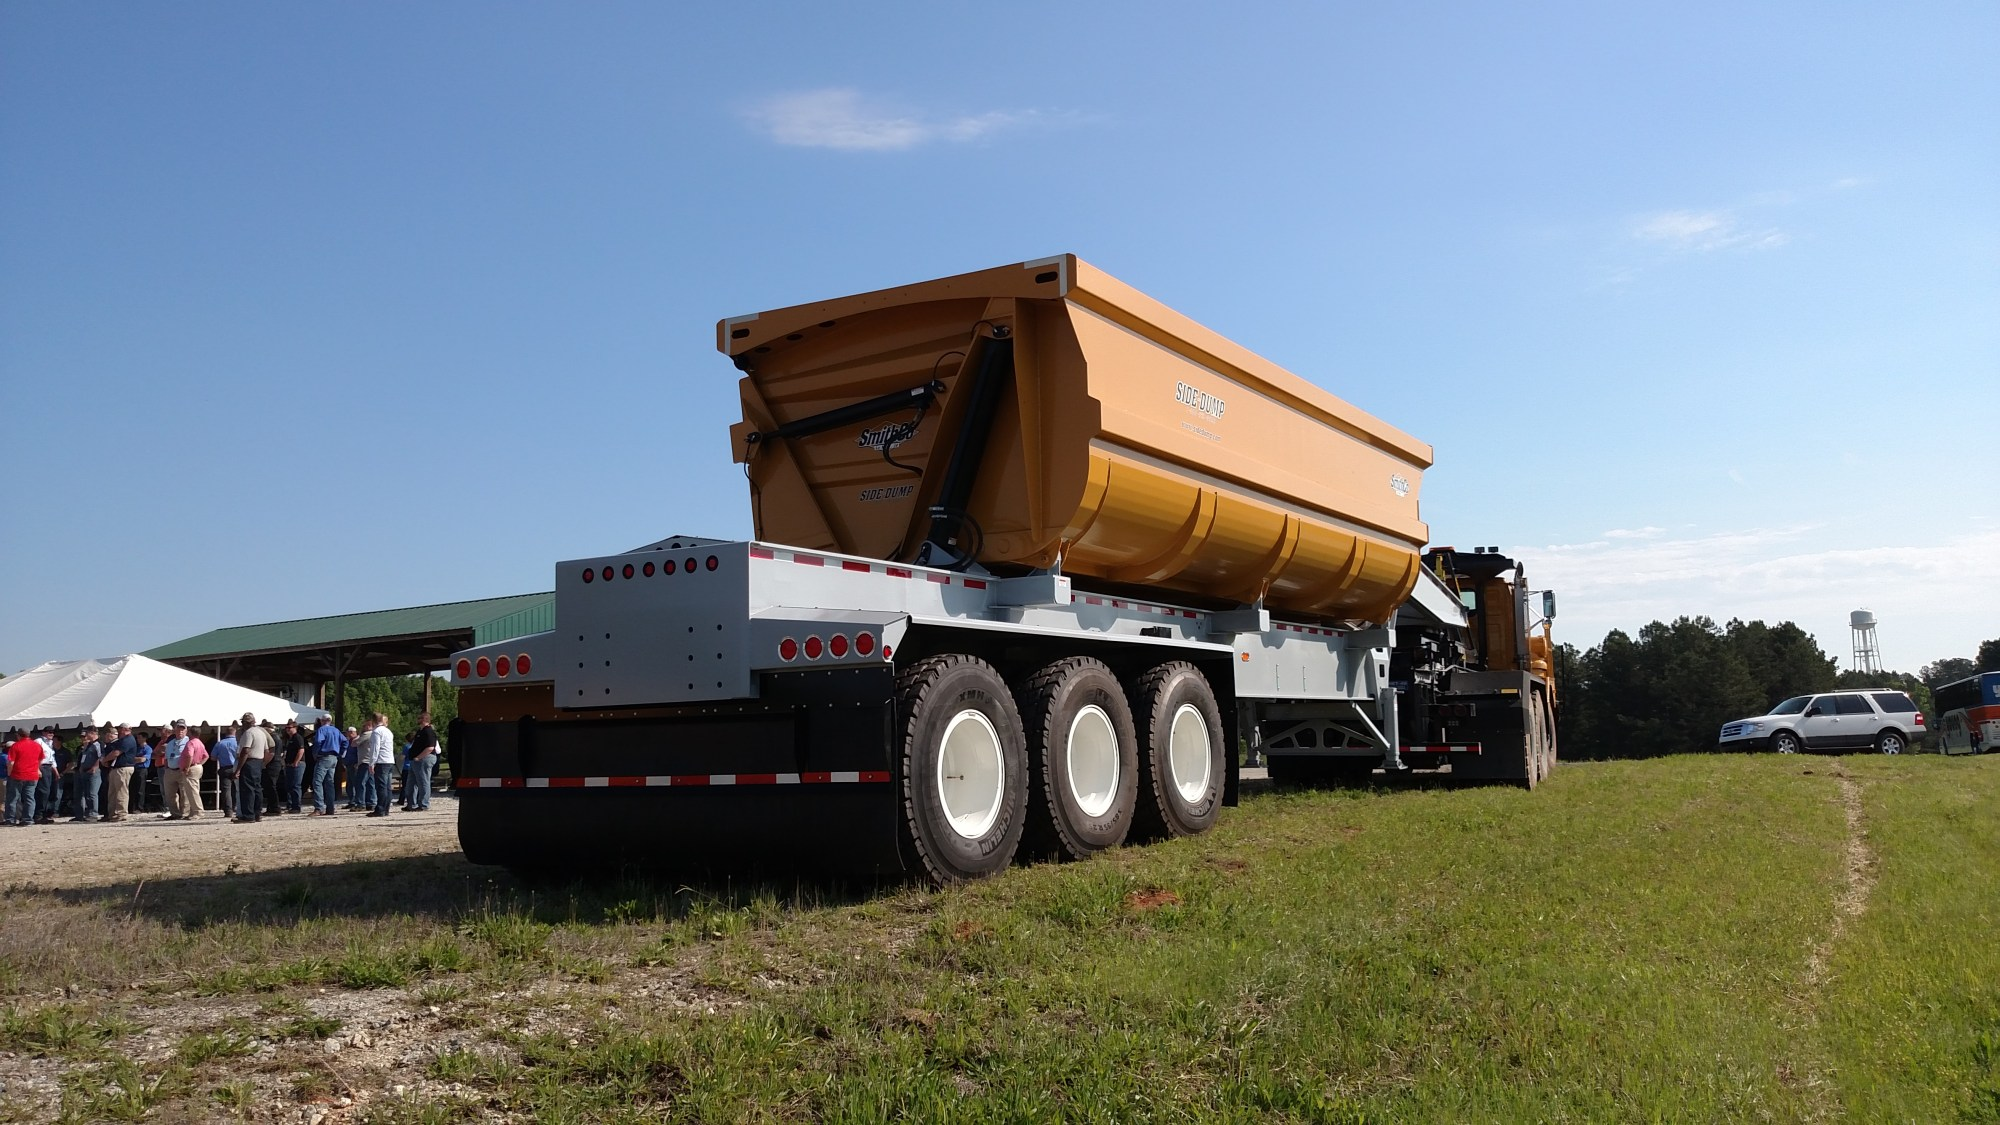 hight resolution of smithco s side dumper is strictly for off road running trailer talk trucking info